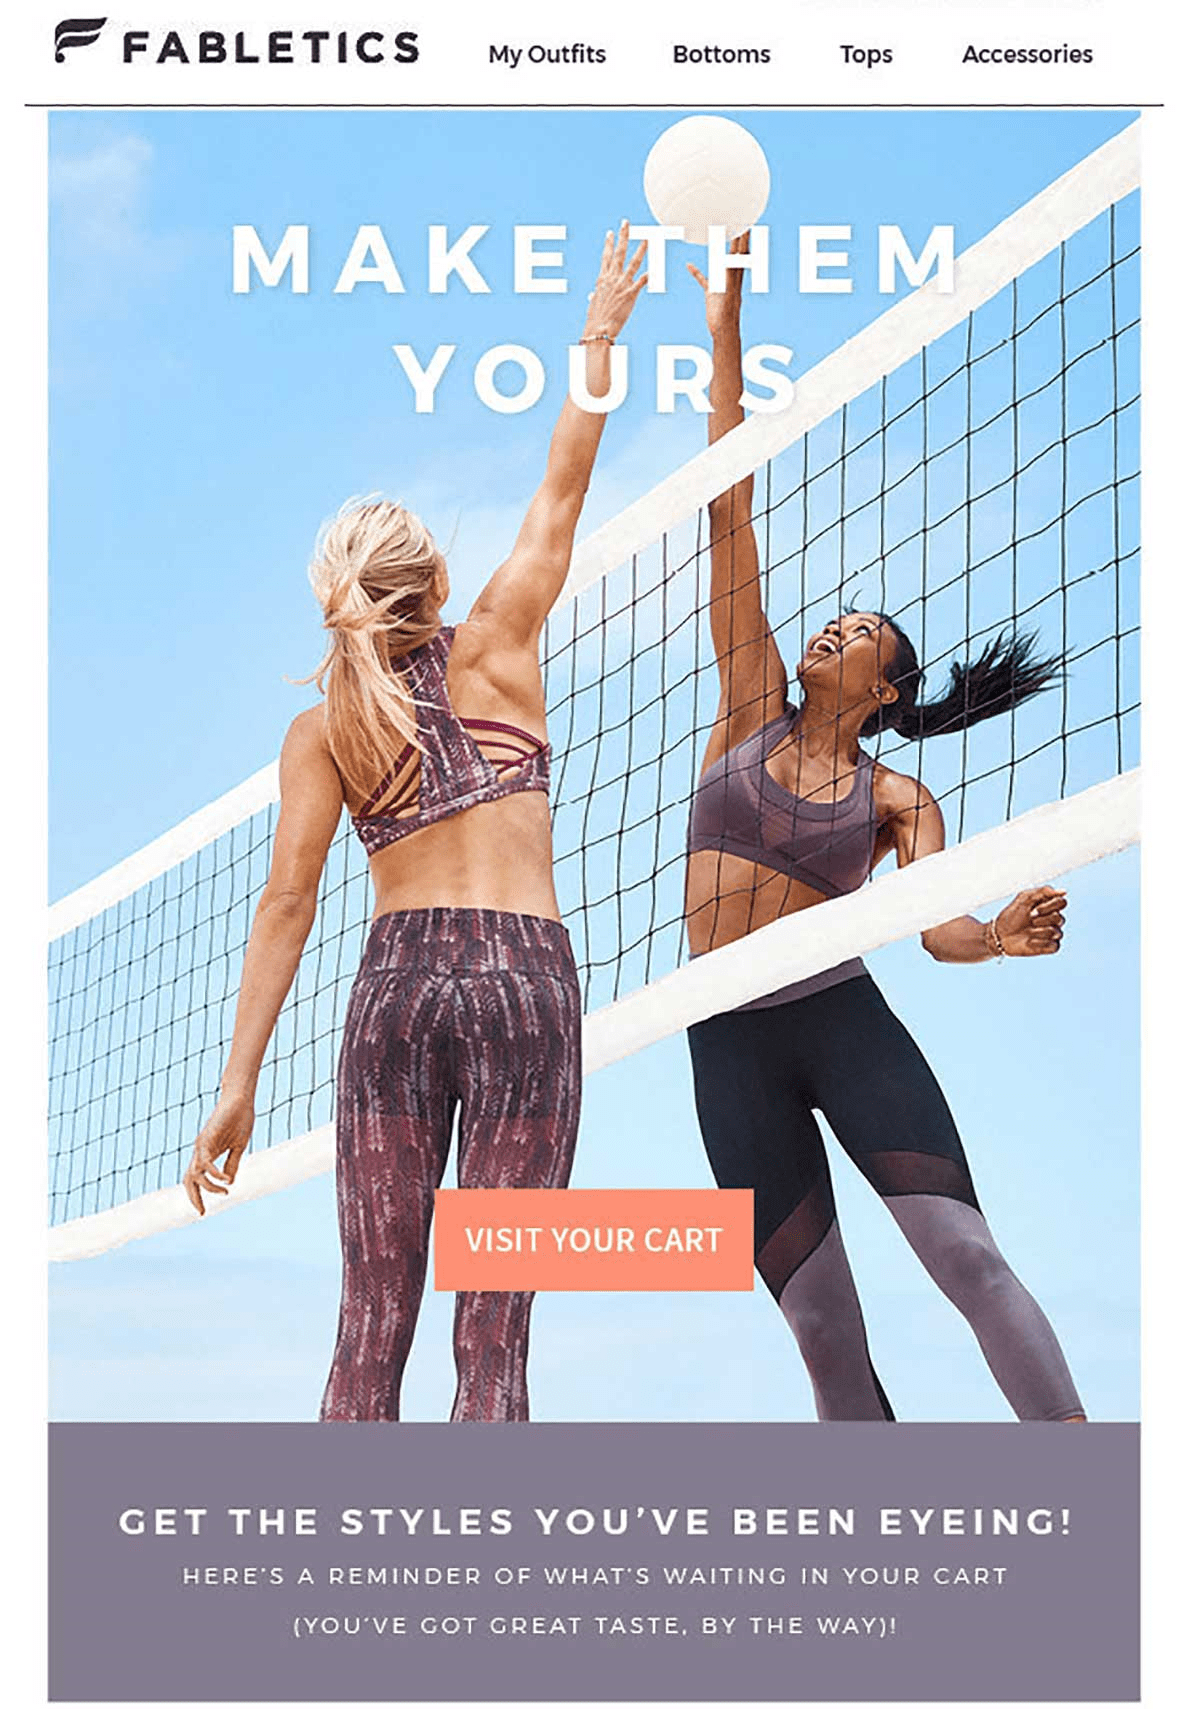 Fabletics simple CTA